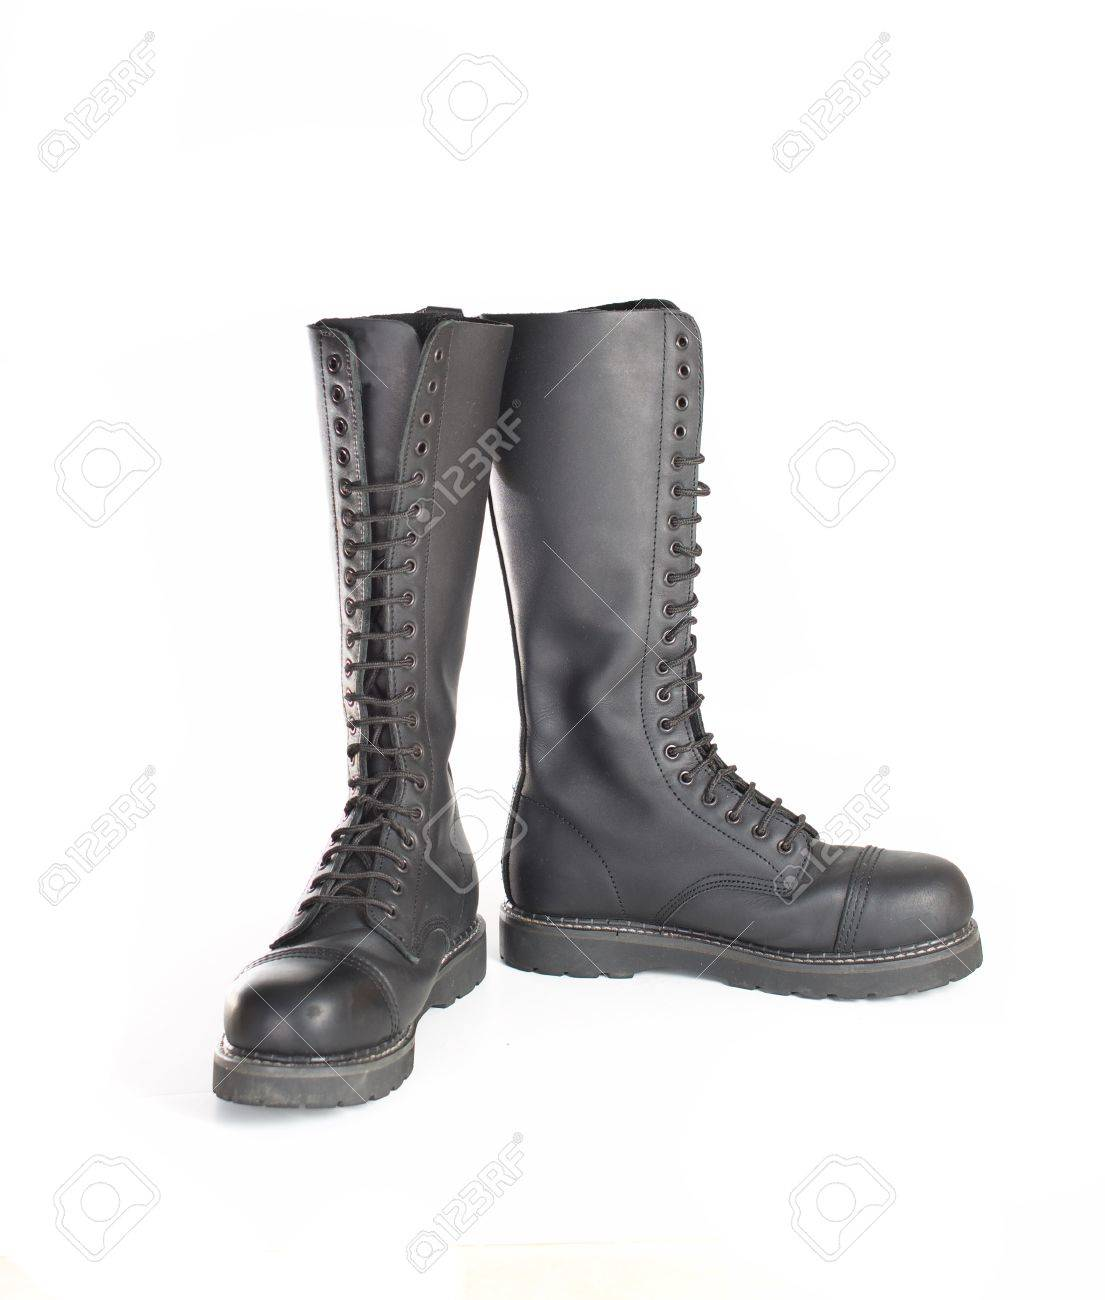 a227701643c New tall lace-up knee-high black leather boots featuring 20 eyelets..